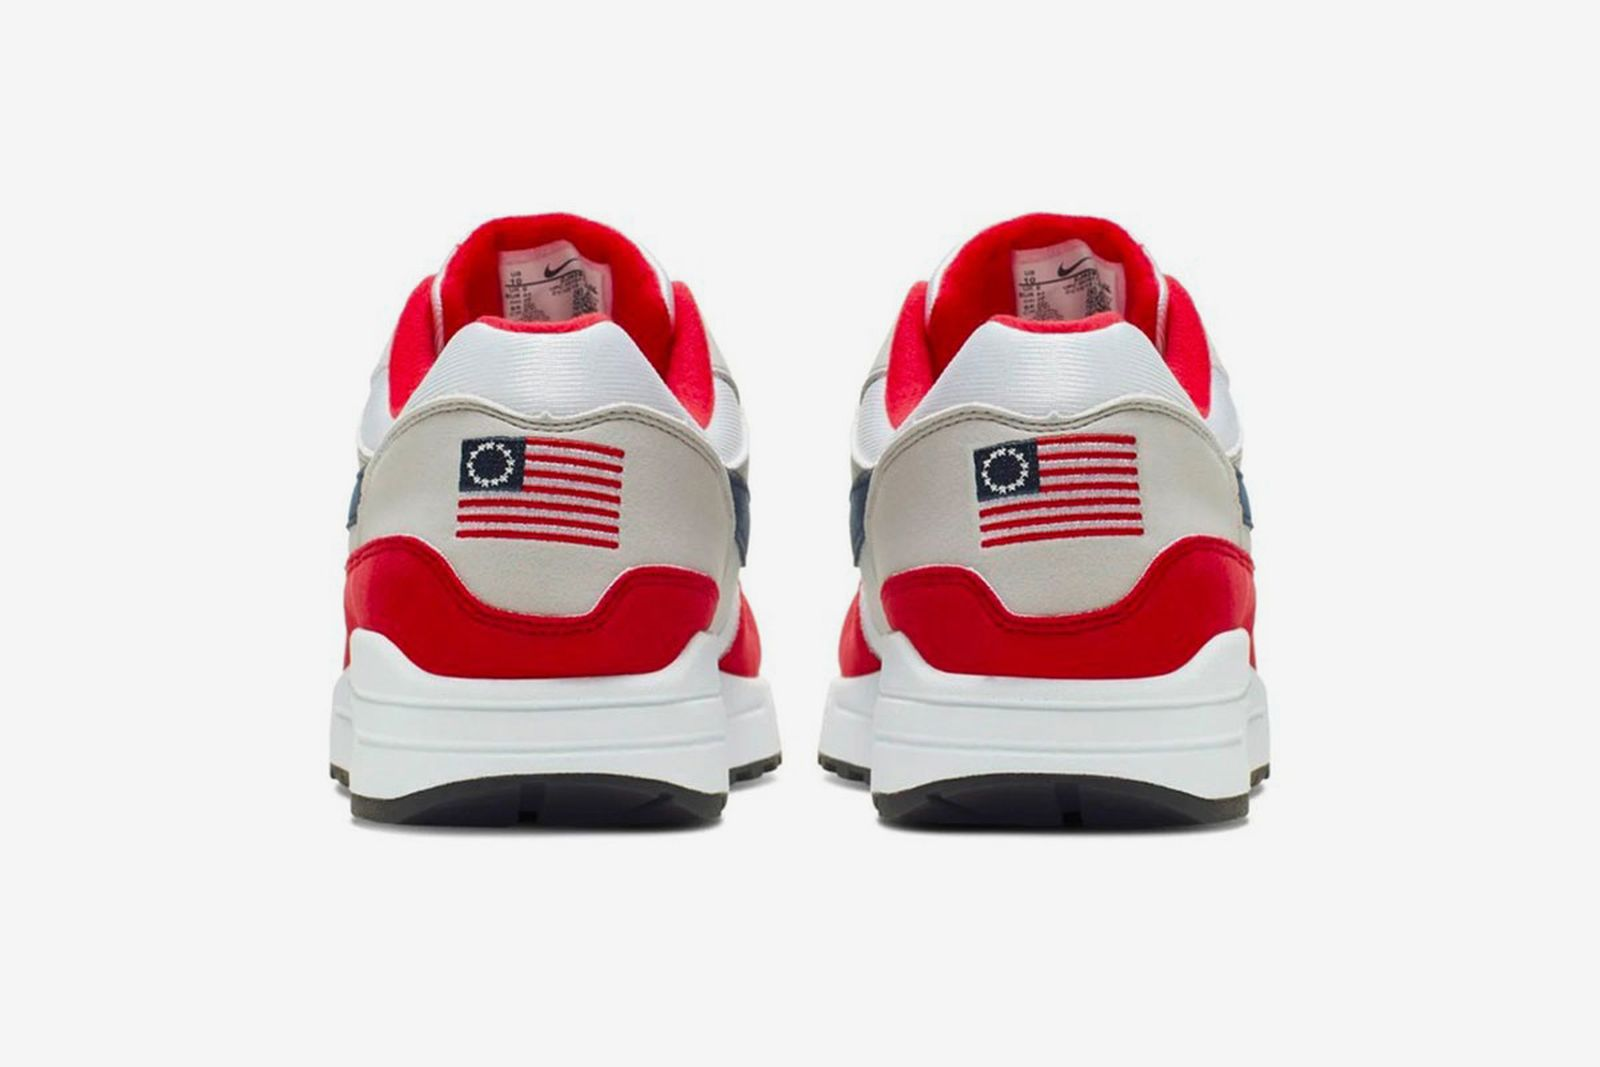 A bordo matrimonio limpiar  Independence Day Air Max 1 Resold for $2,000 Before Being Pulled